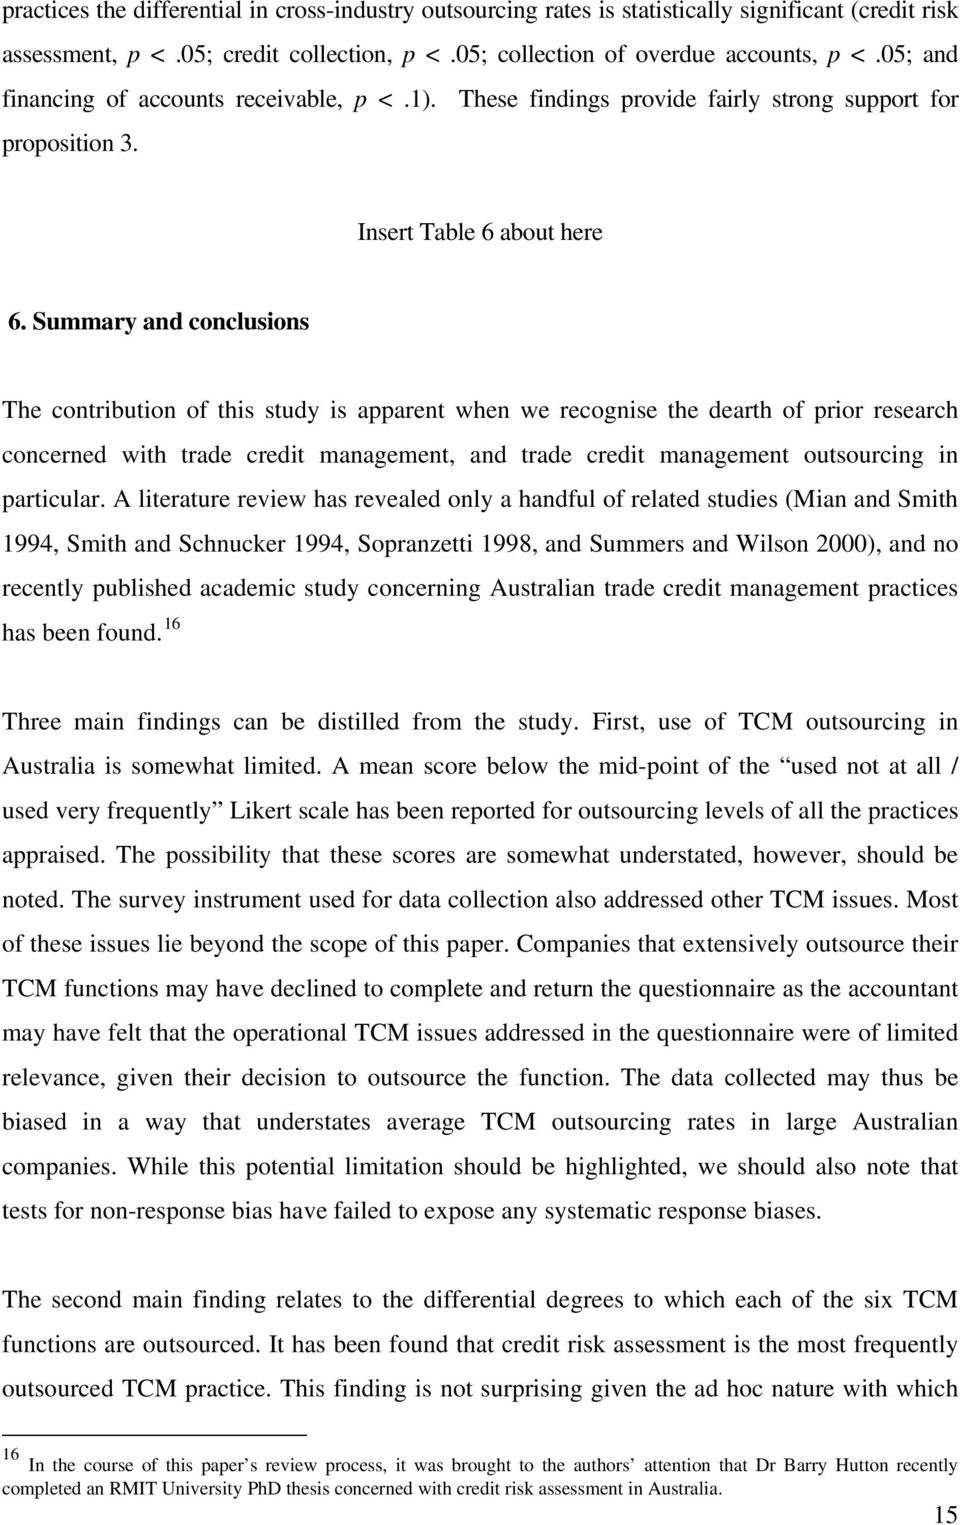 Summary and conclusions The contribution of this study is apparent when we recognise the dearth of prior research concerned with trade credit management, and trade credit management outsourcing in